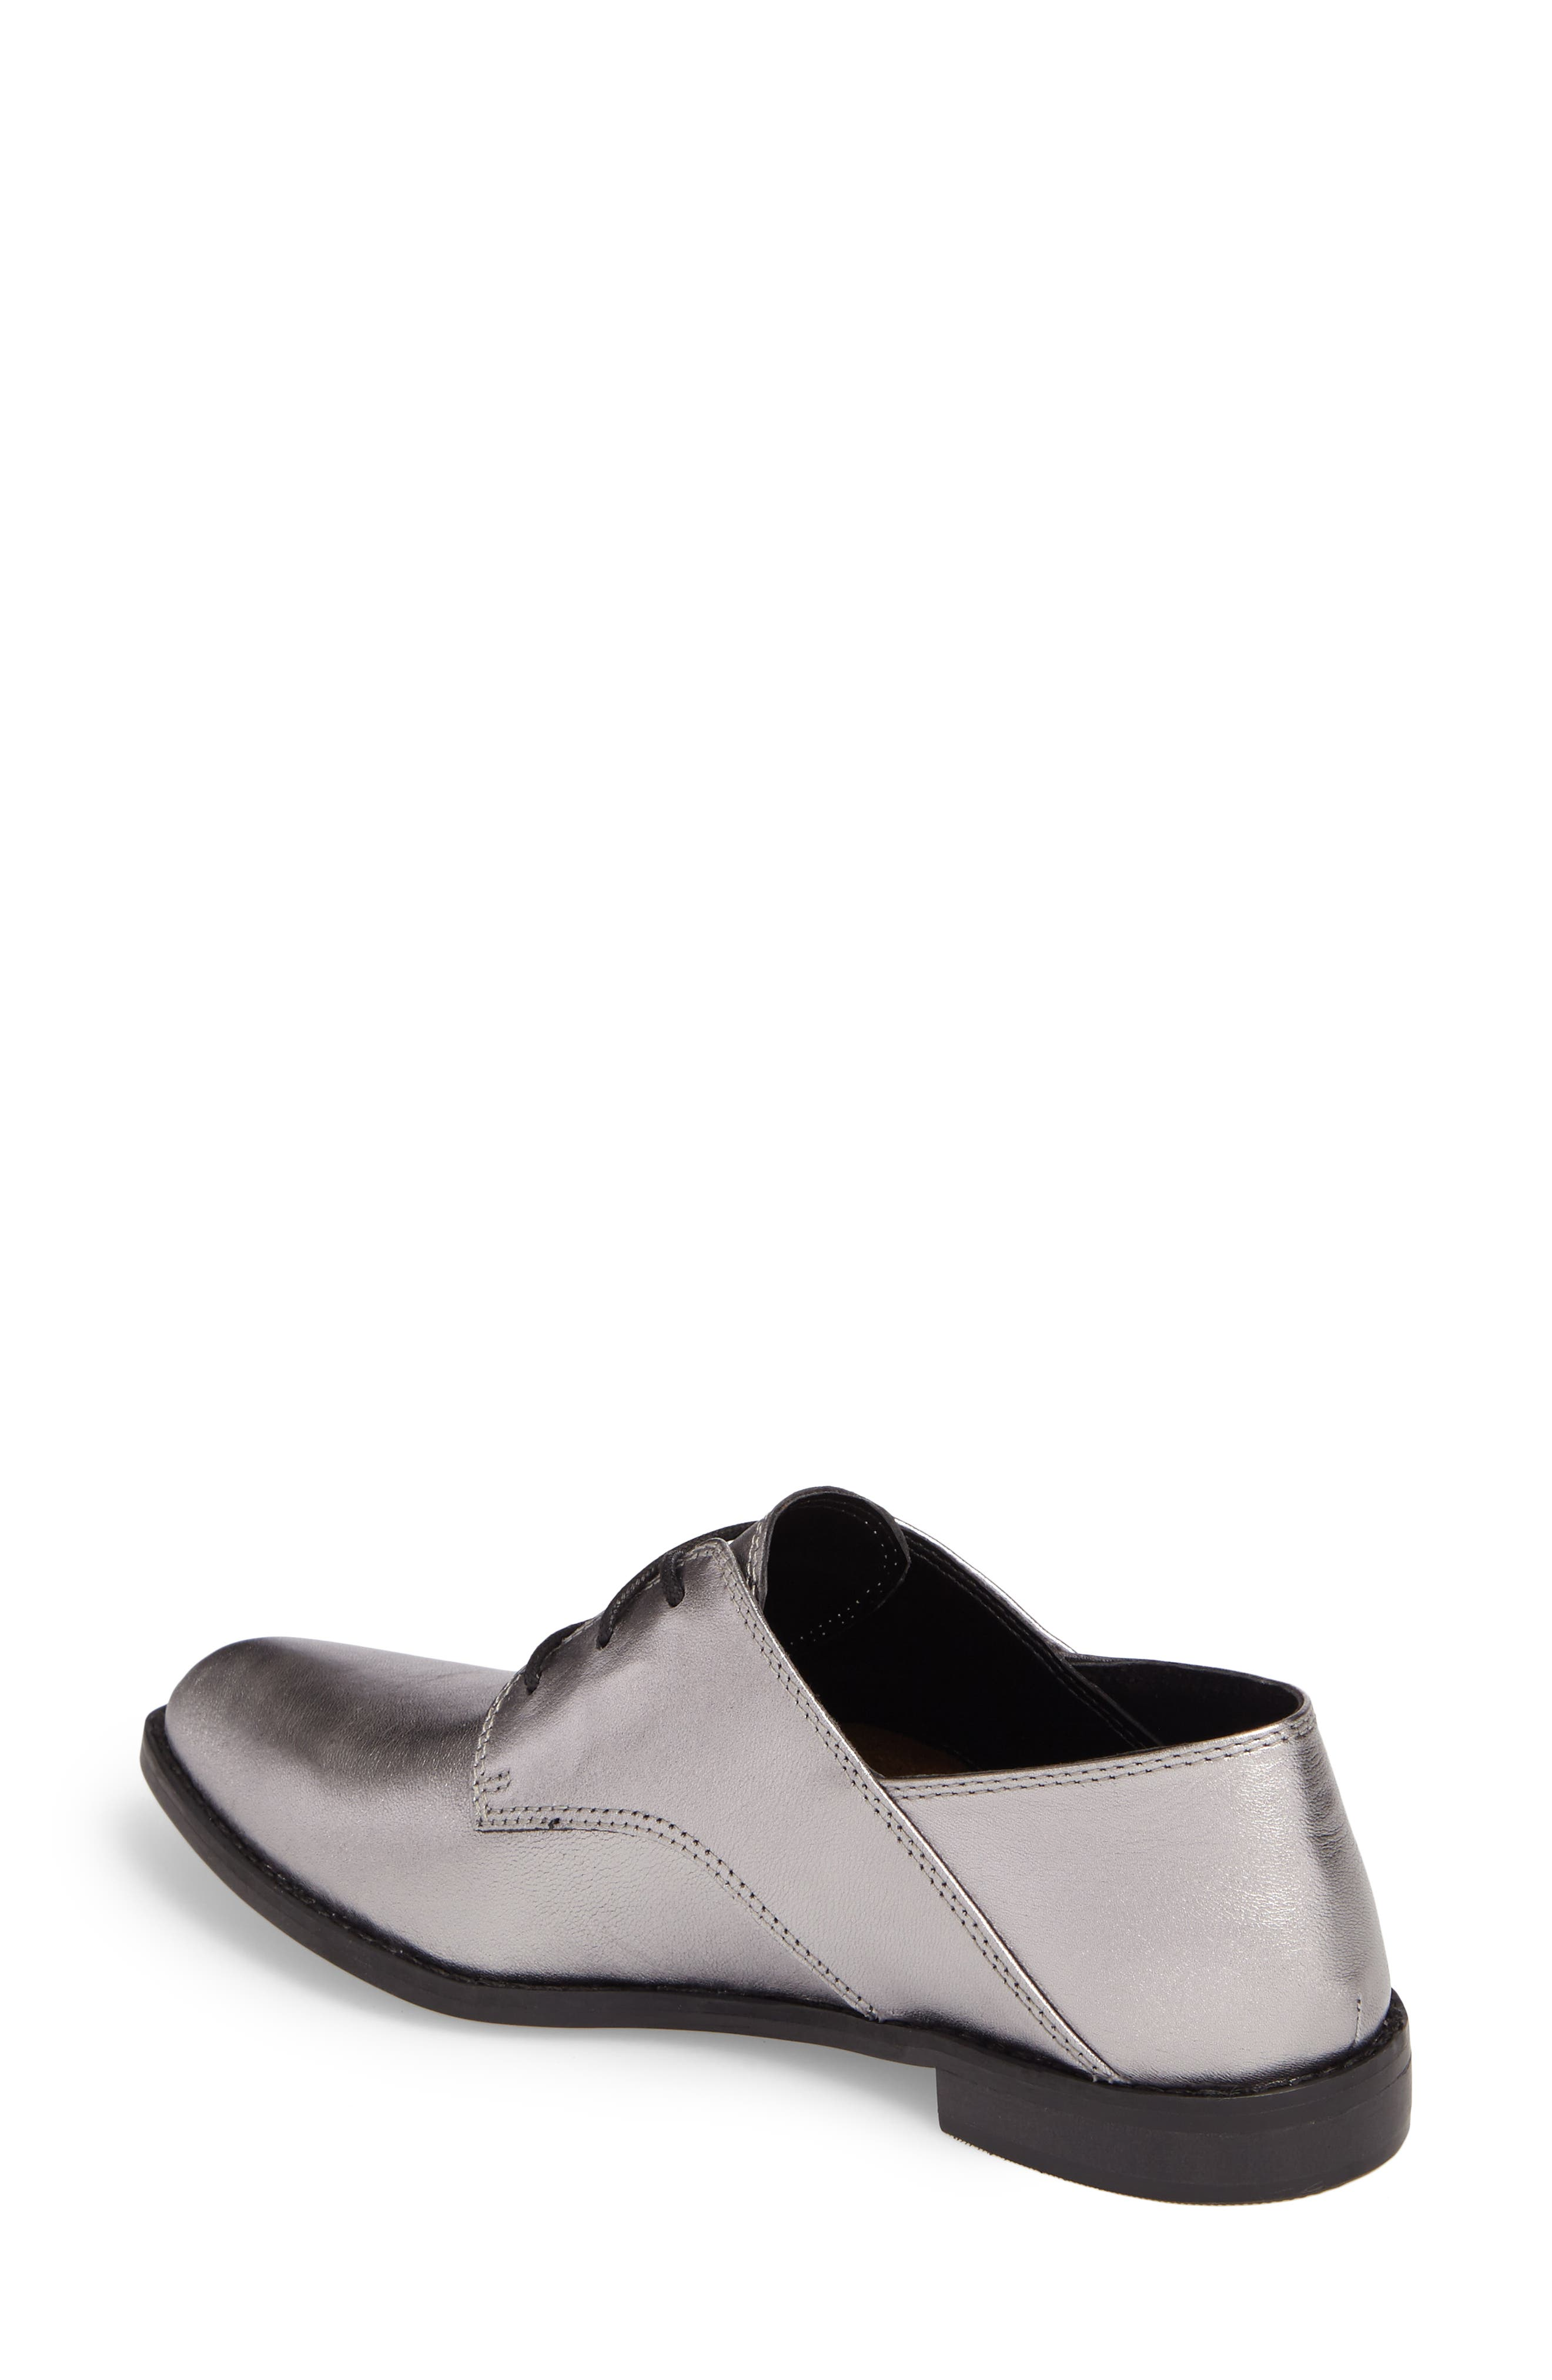 Corbin Oxford,                             Alternate thumbnail 2, color,                             Pewter Leather